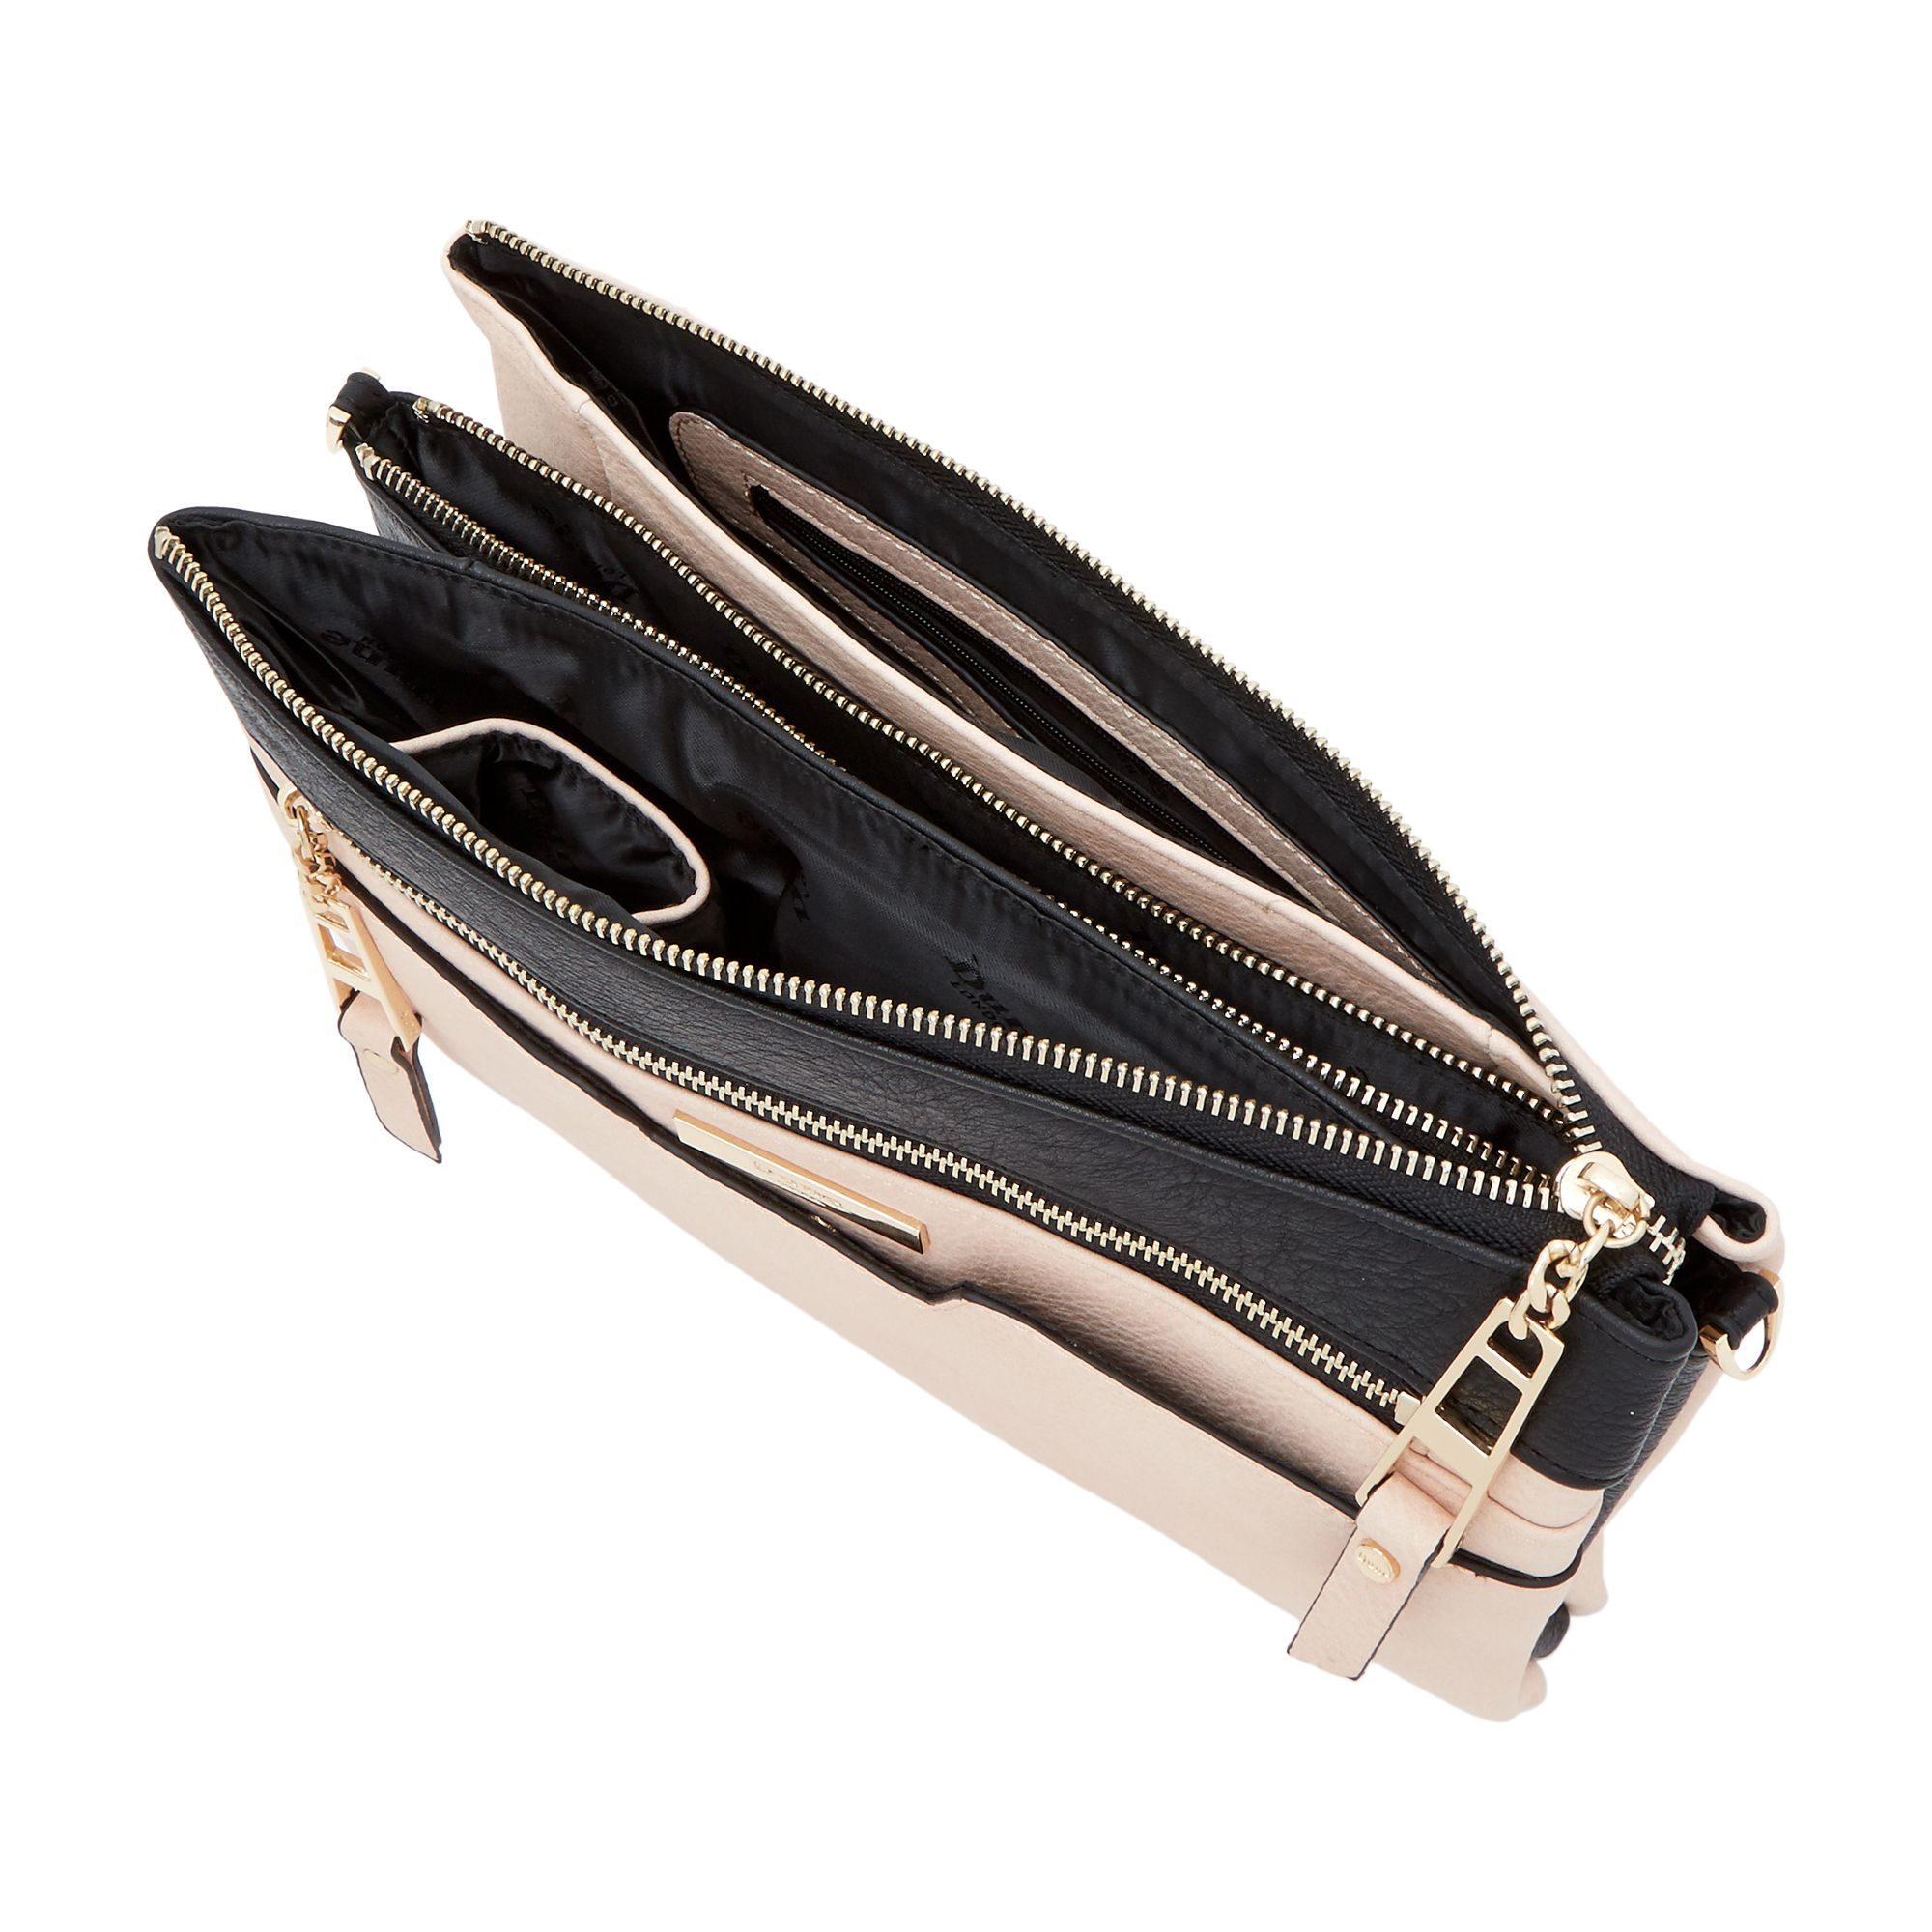 Dune Demily Multi Compartment Cross Body Bag in Black